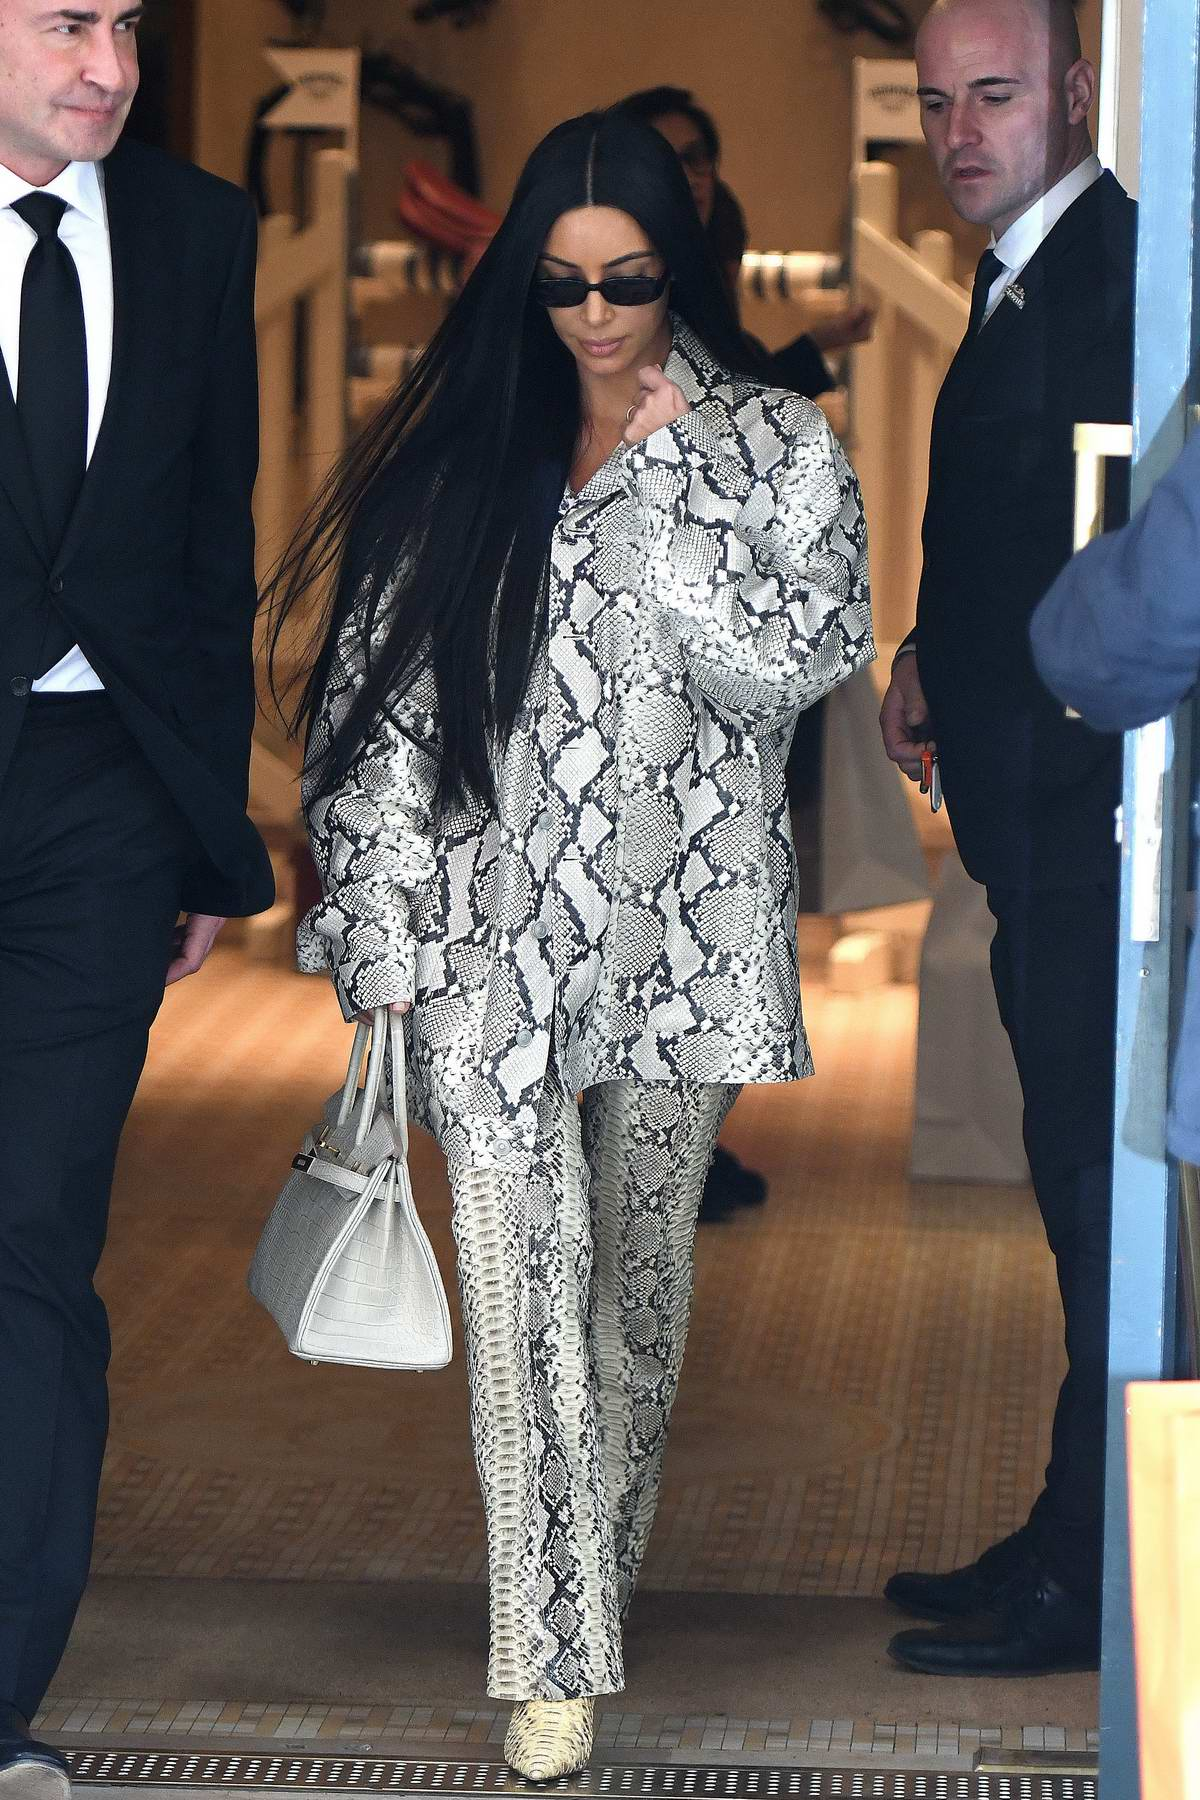 Kim Kardashian seen wearing snakeskin print ensemble as she leaves Hermes store in Paris, France